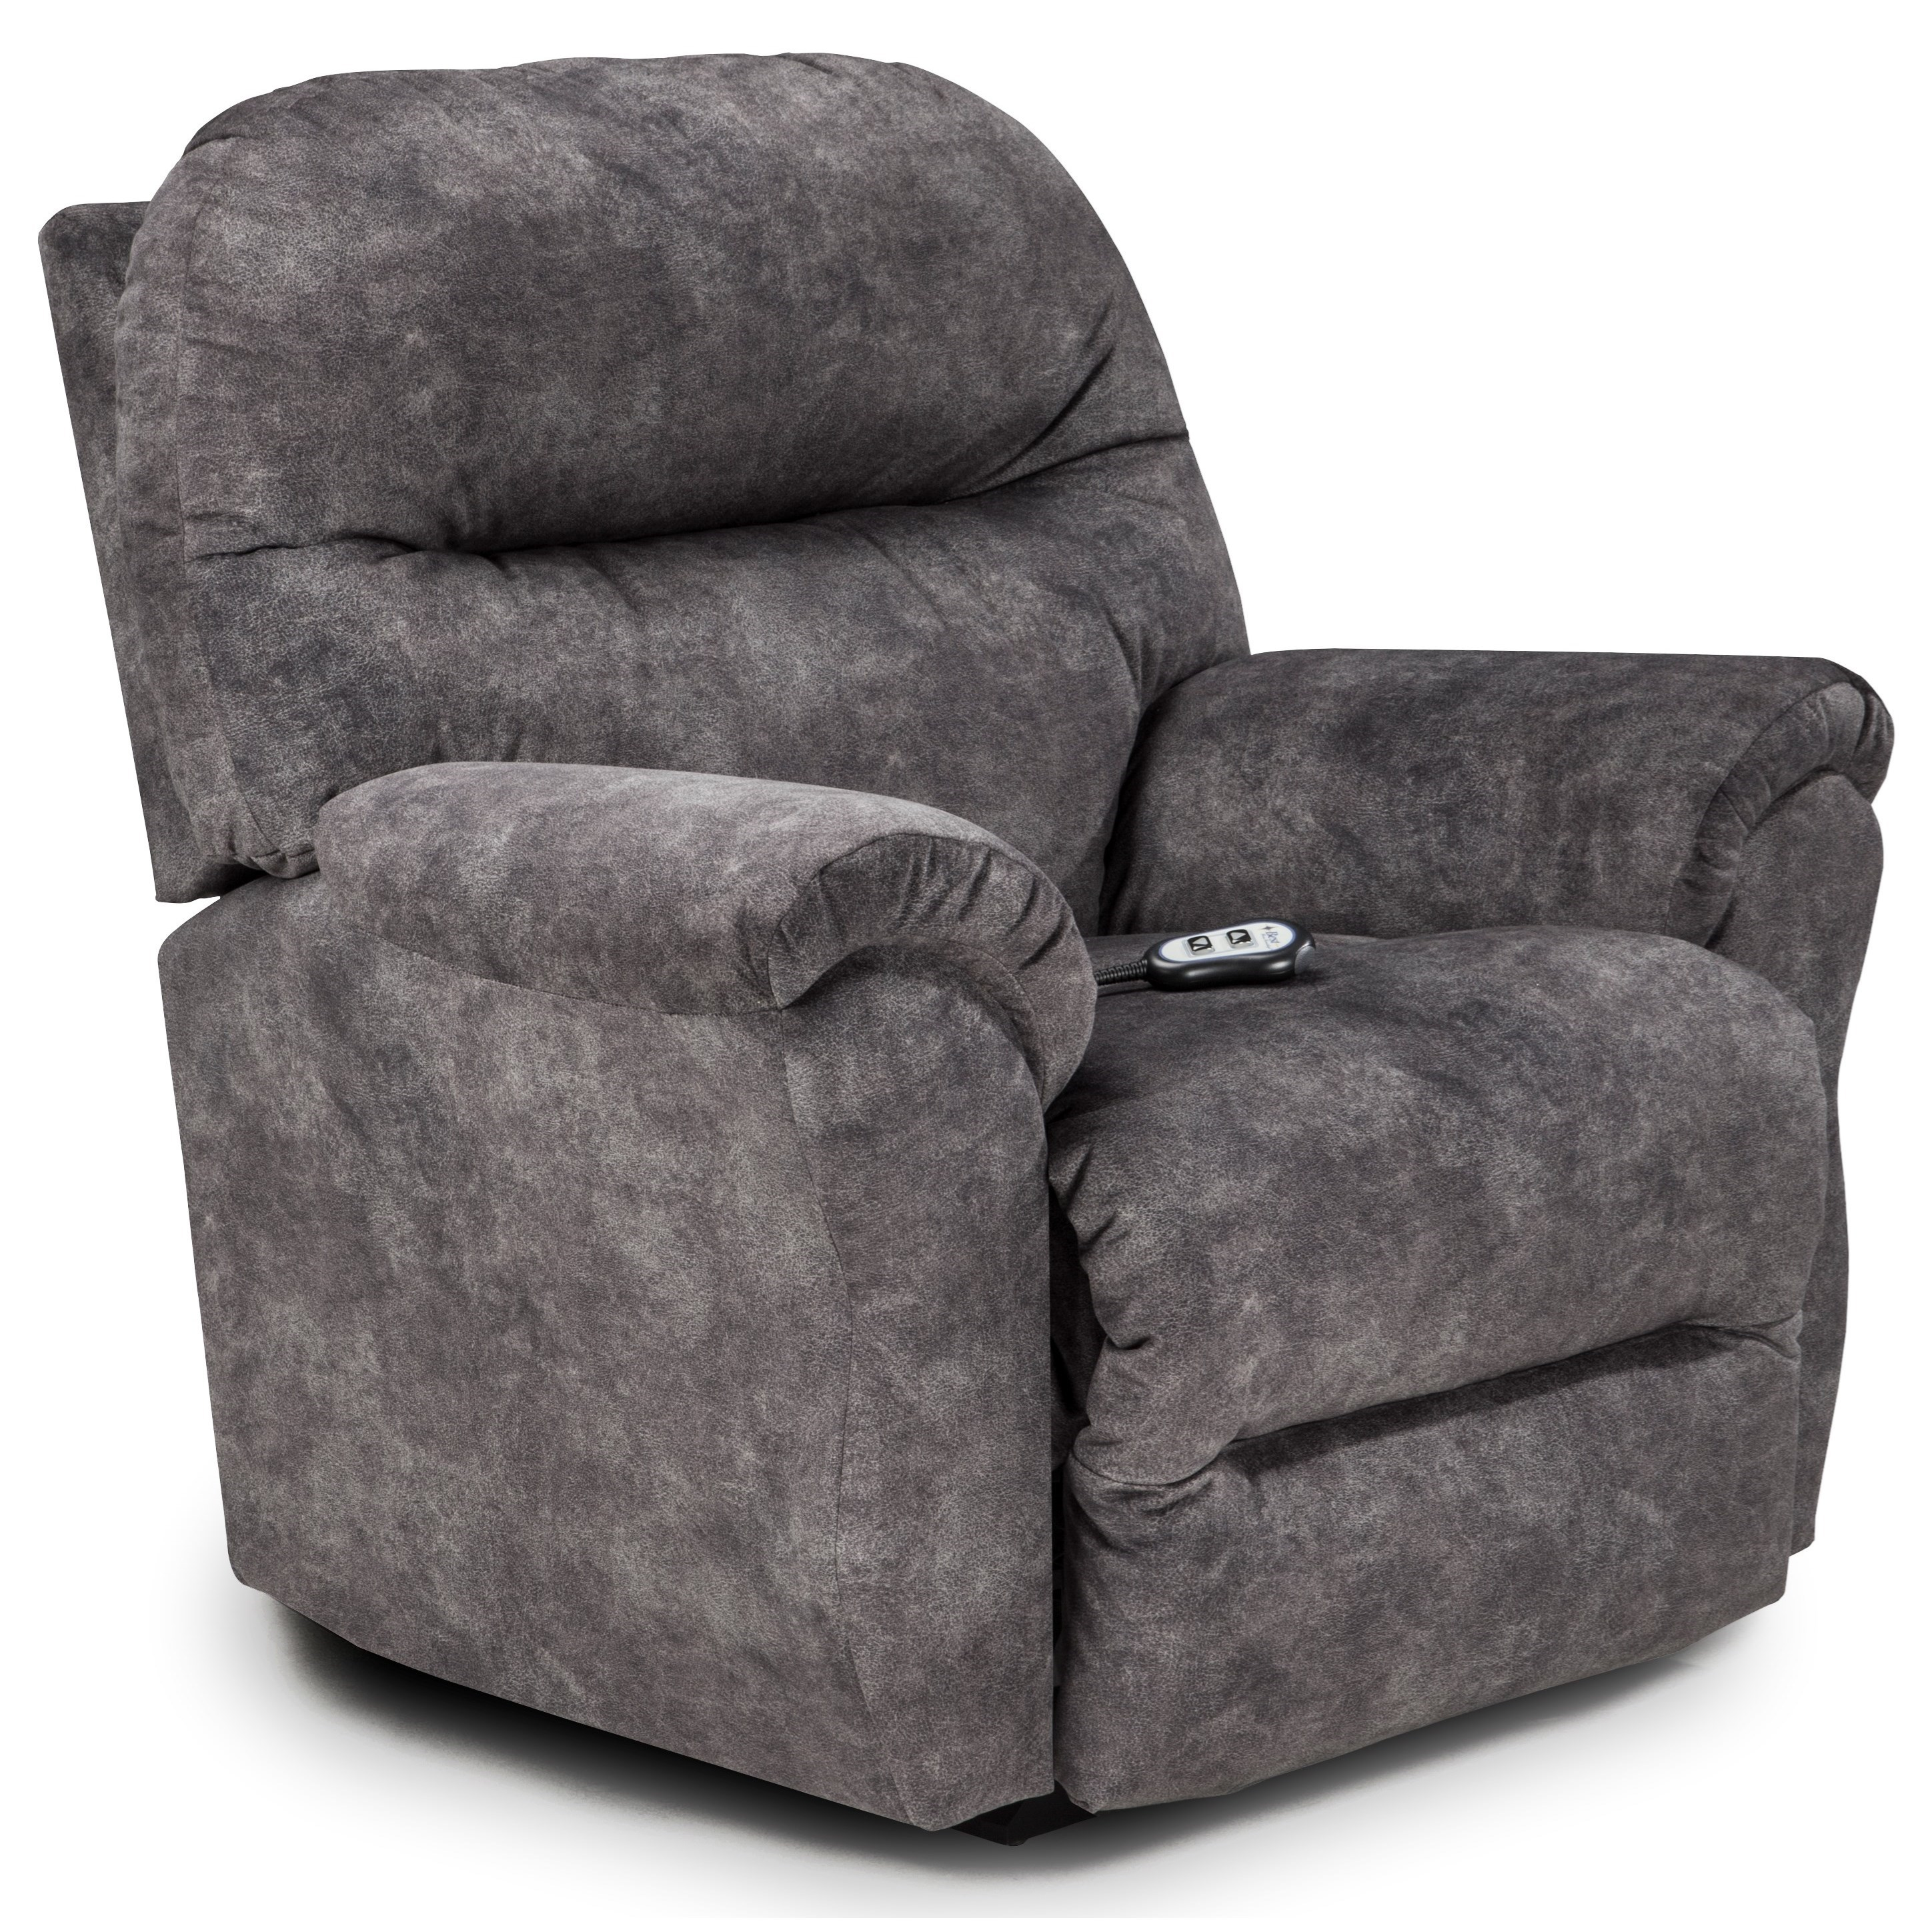 Medium Recliners Bodie Power Wallhugger Recliner by Best Home Furnishings at Baer's Furniture